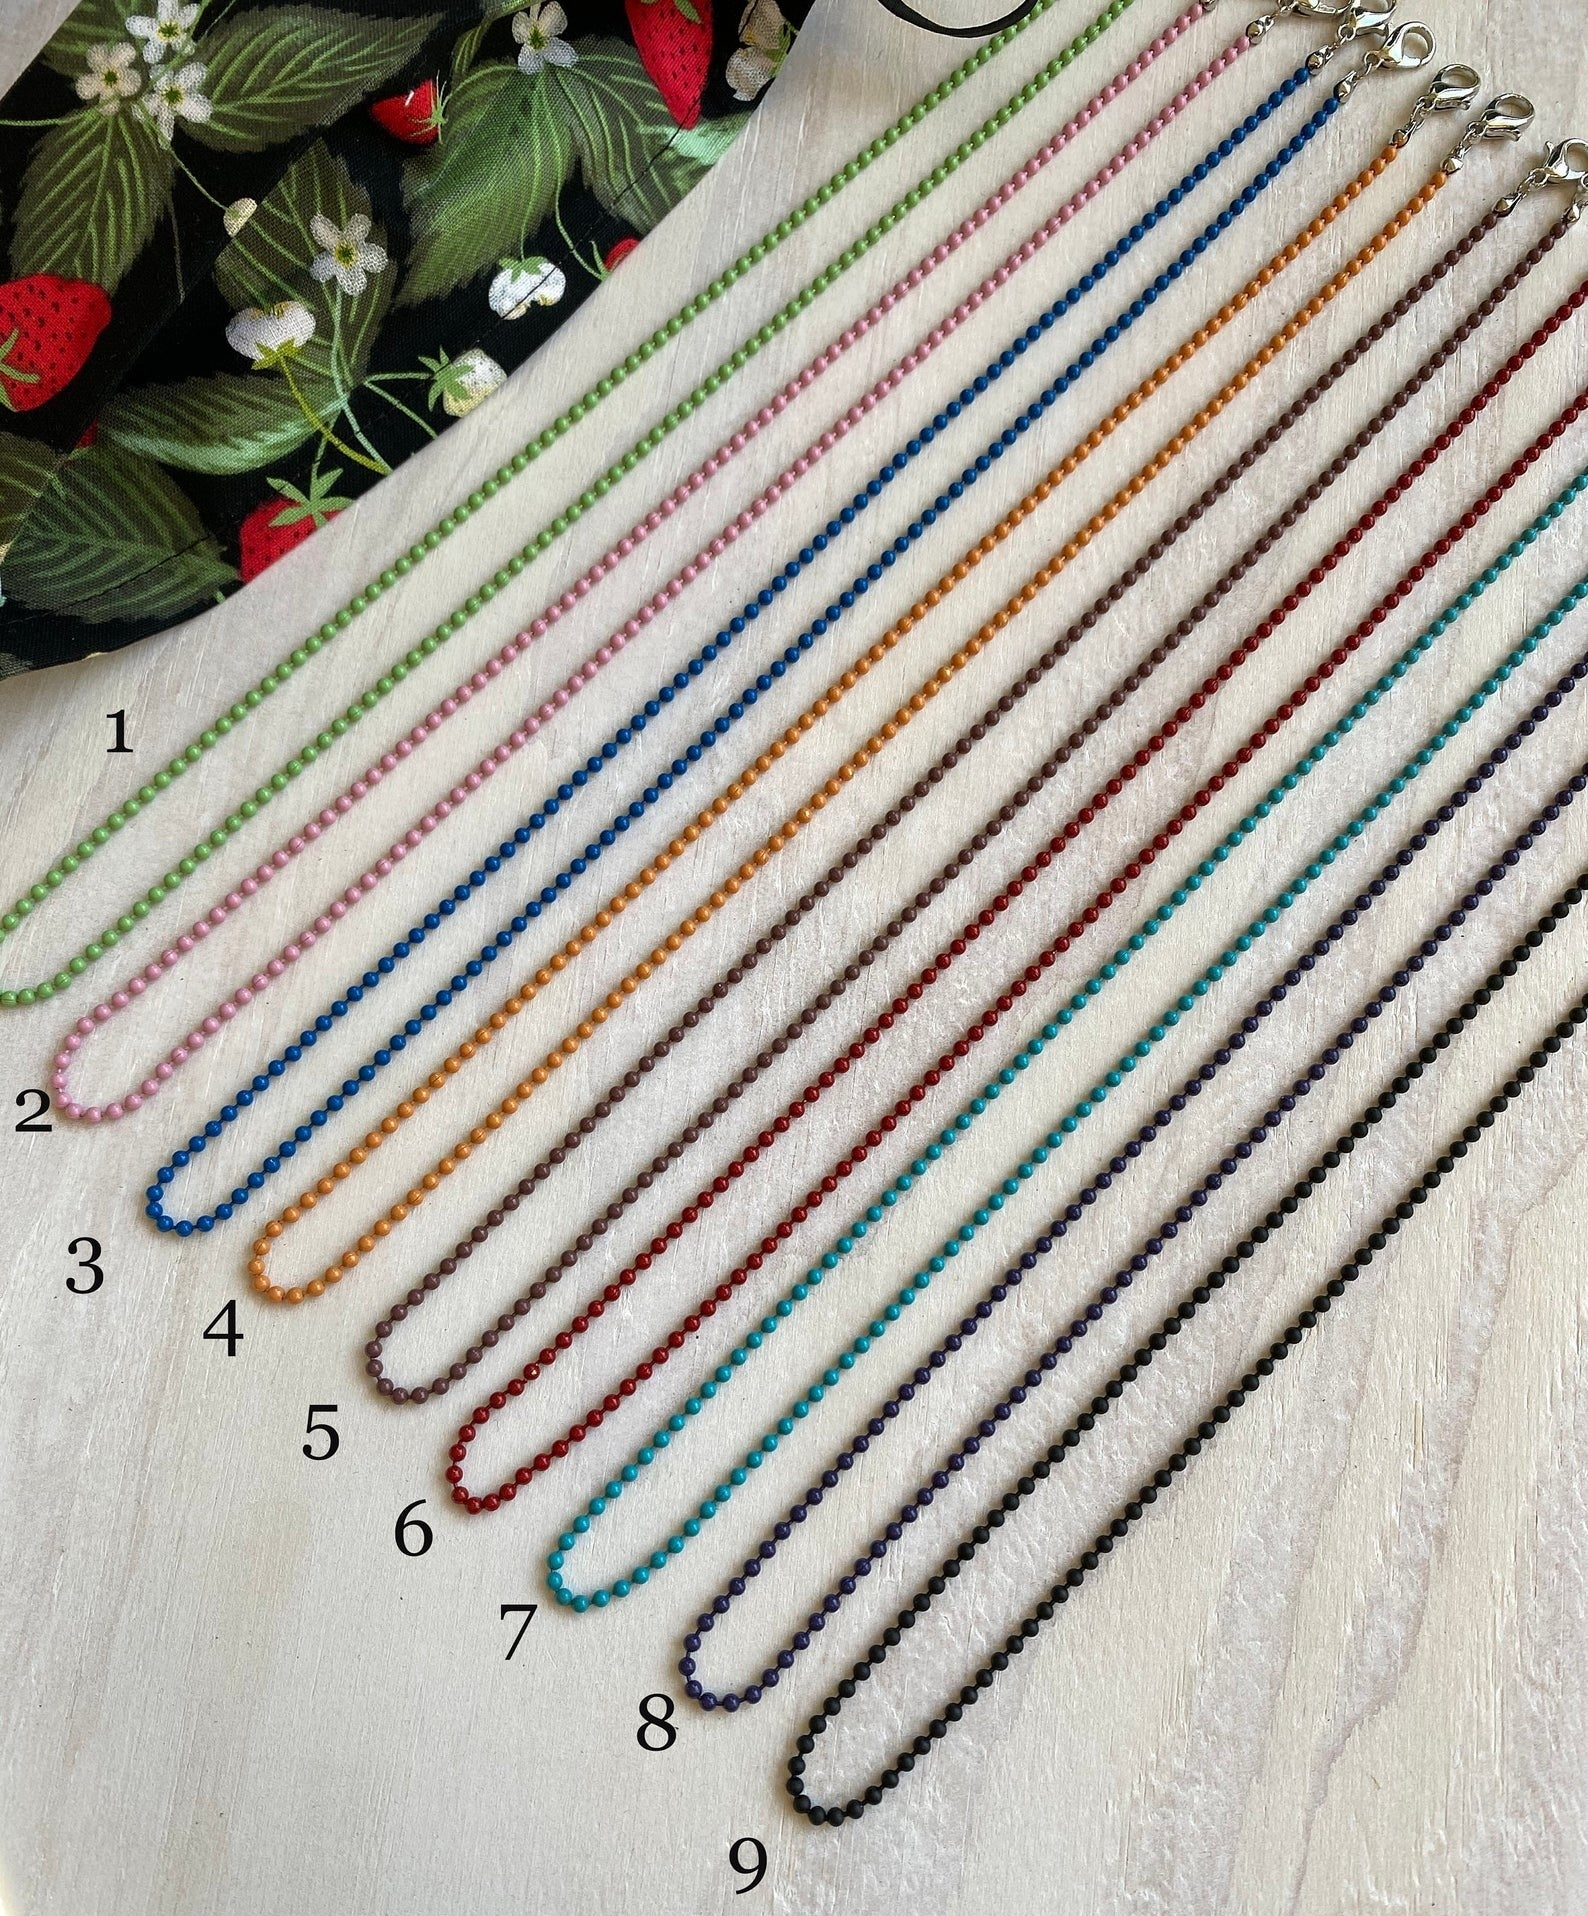 Small beaded face mask chains in nine colors